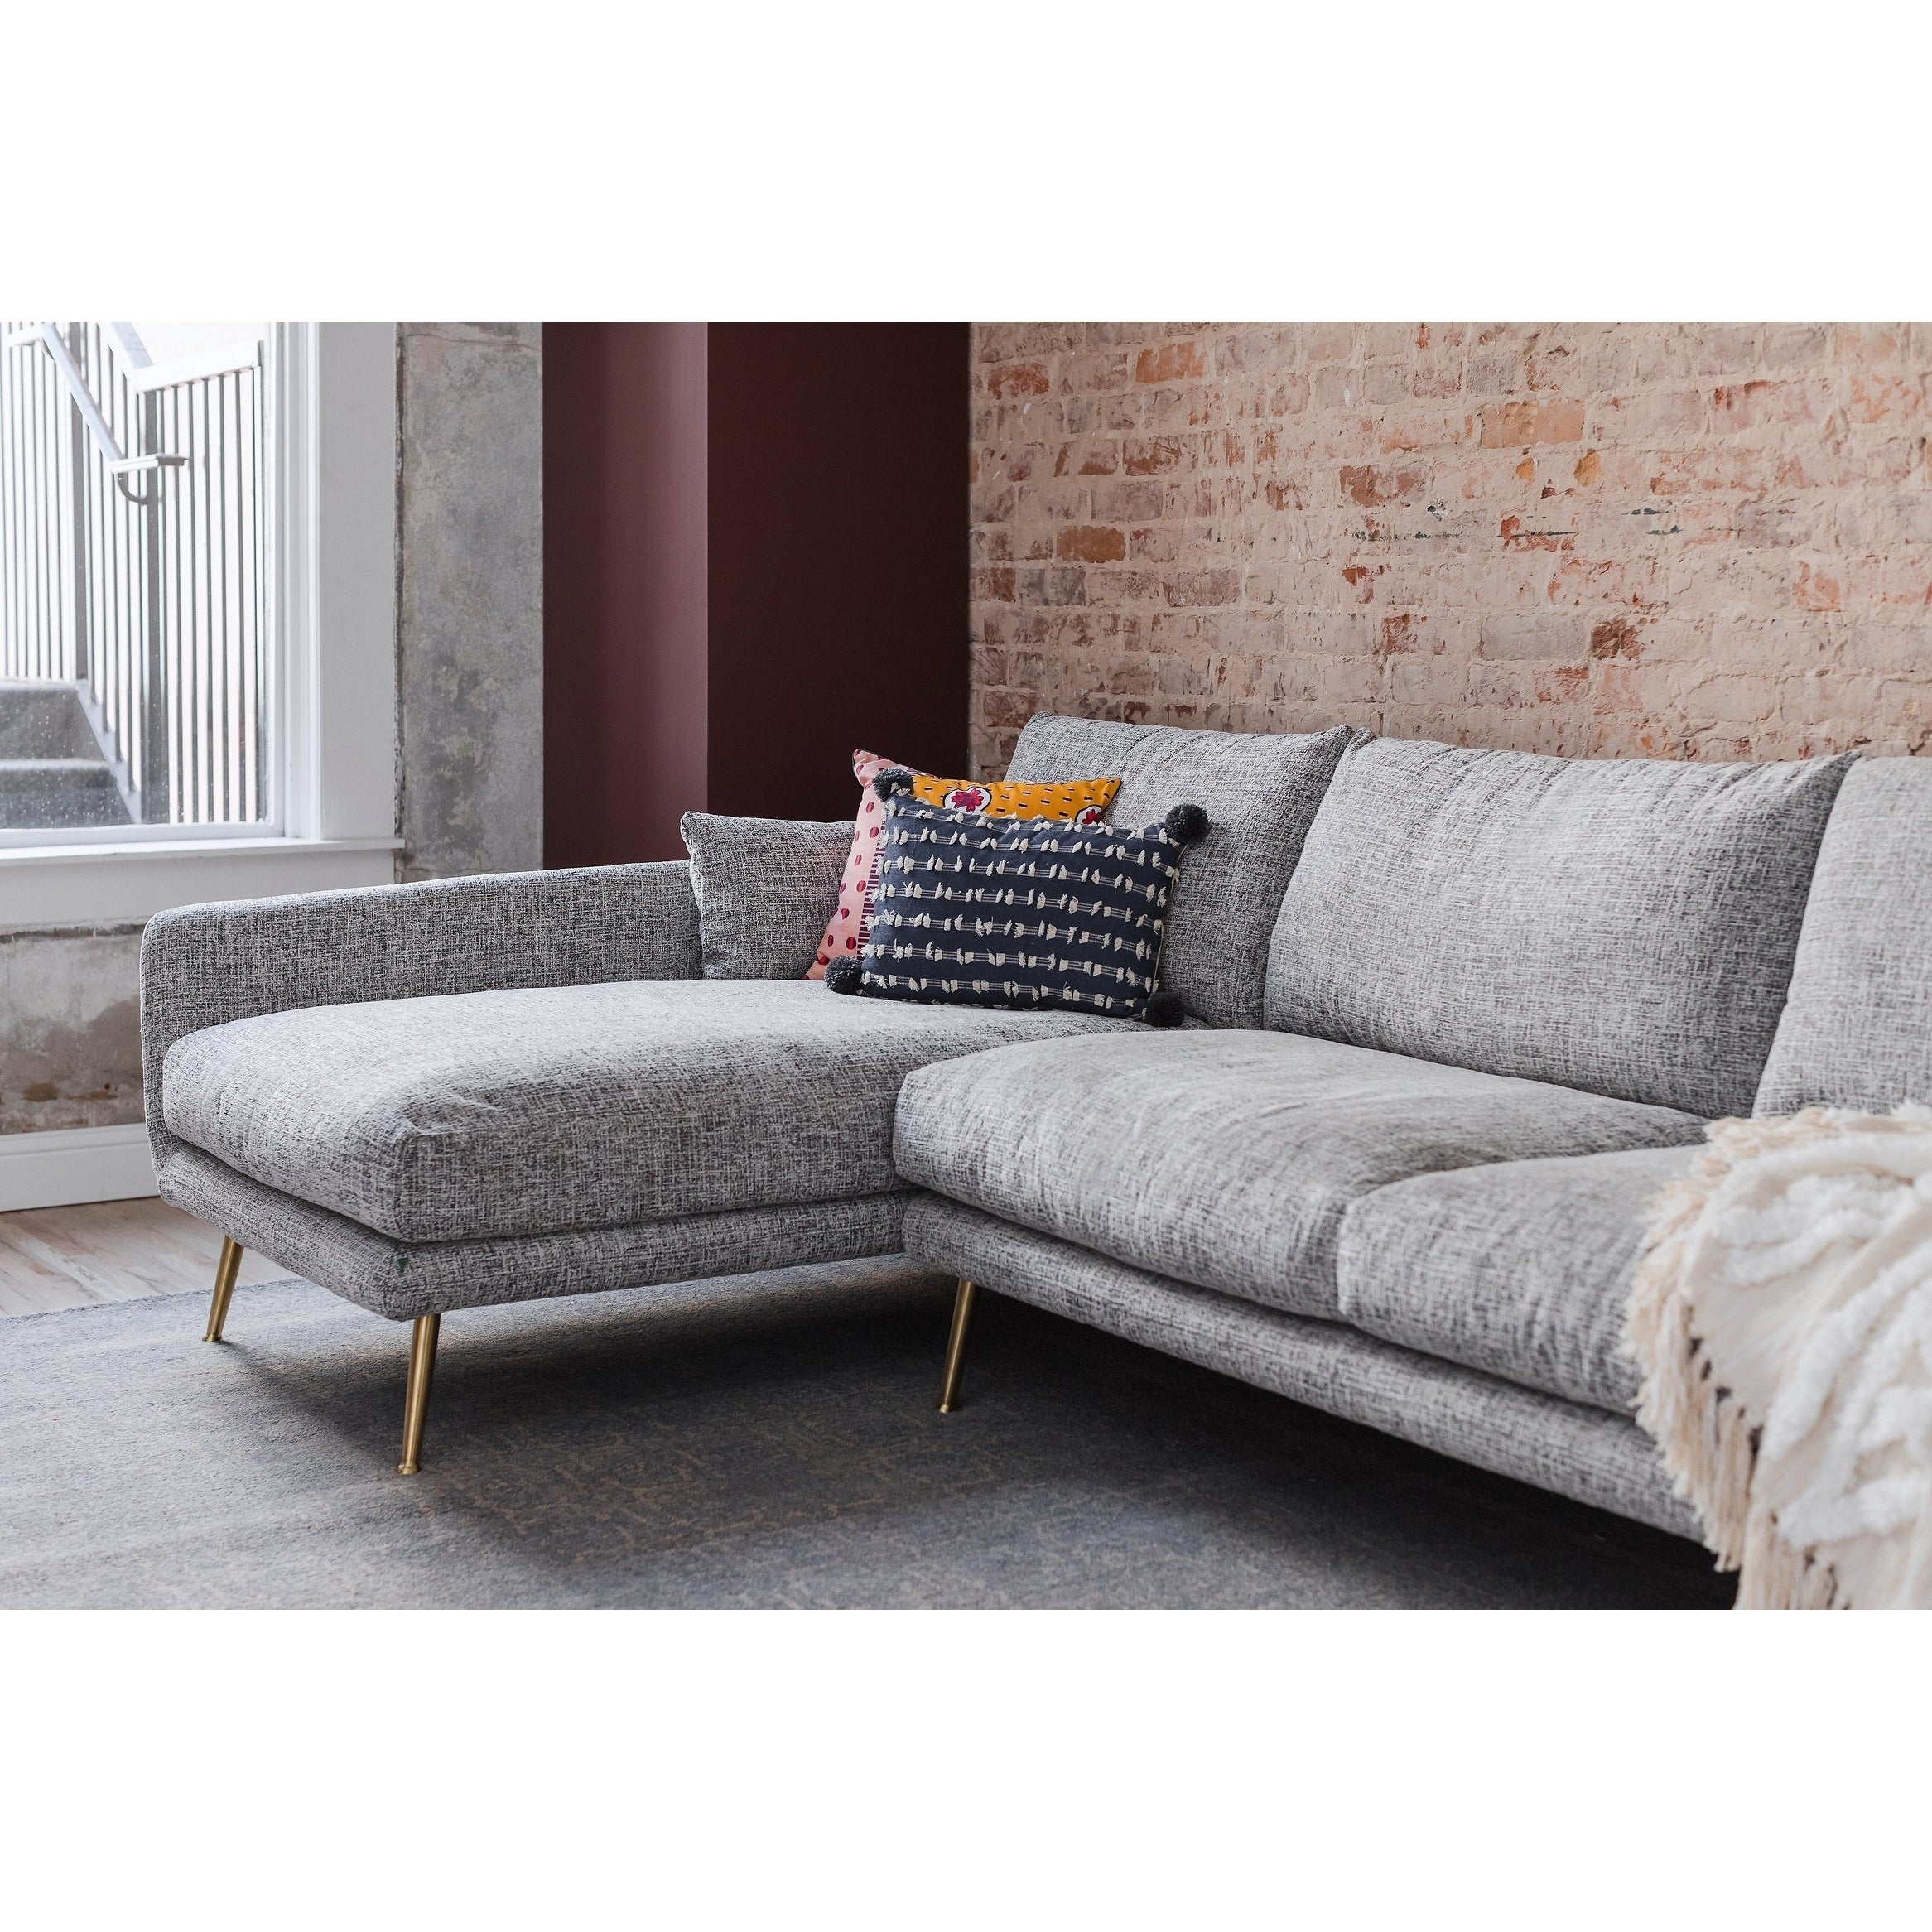 Shop hayley grey upholstered mid century modern sectional sofa free shipping today overstock com 23136568